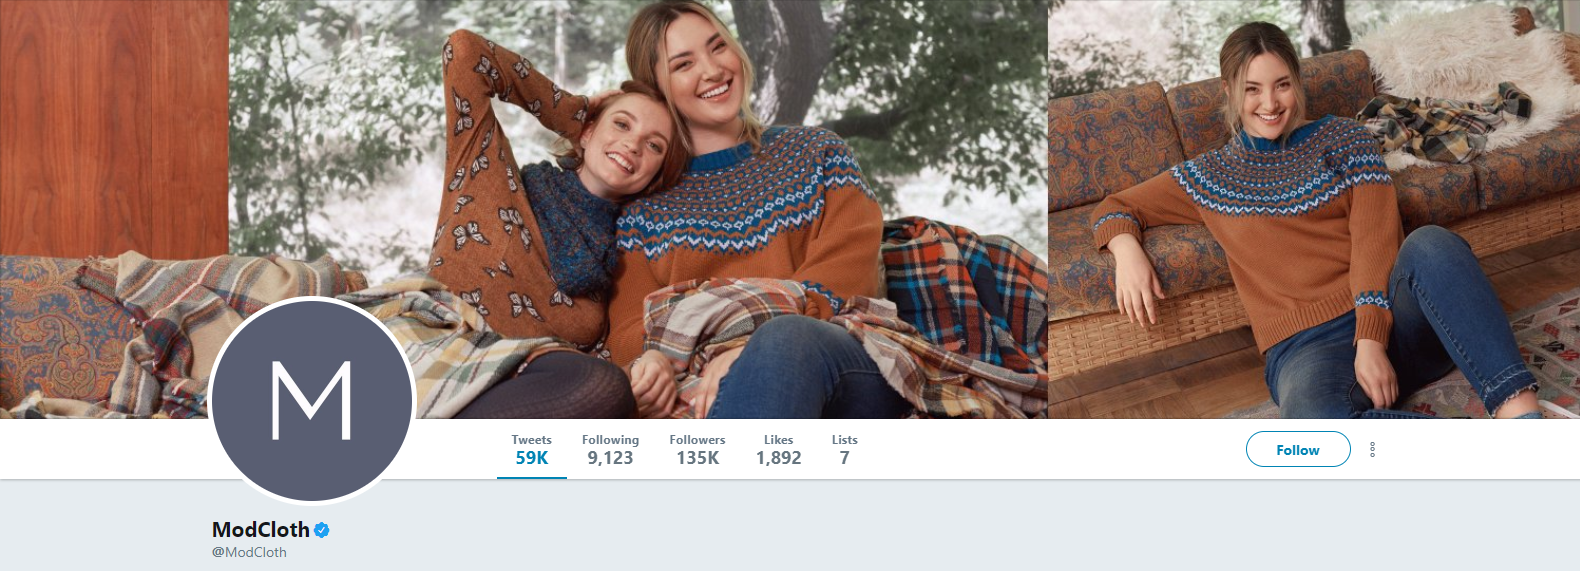 ModCloth Twitter Profile